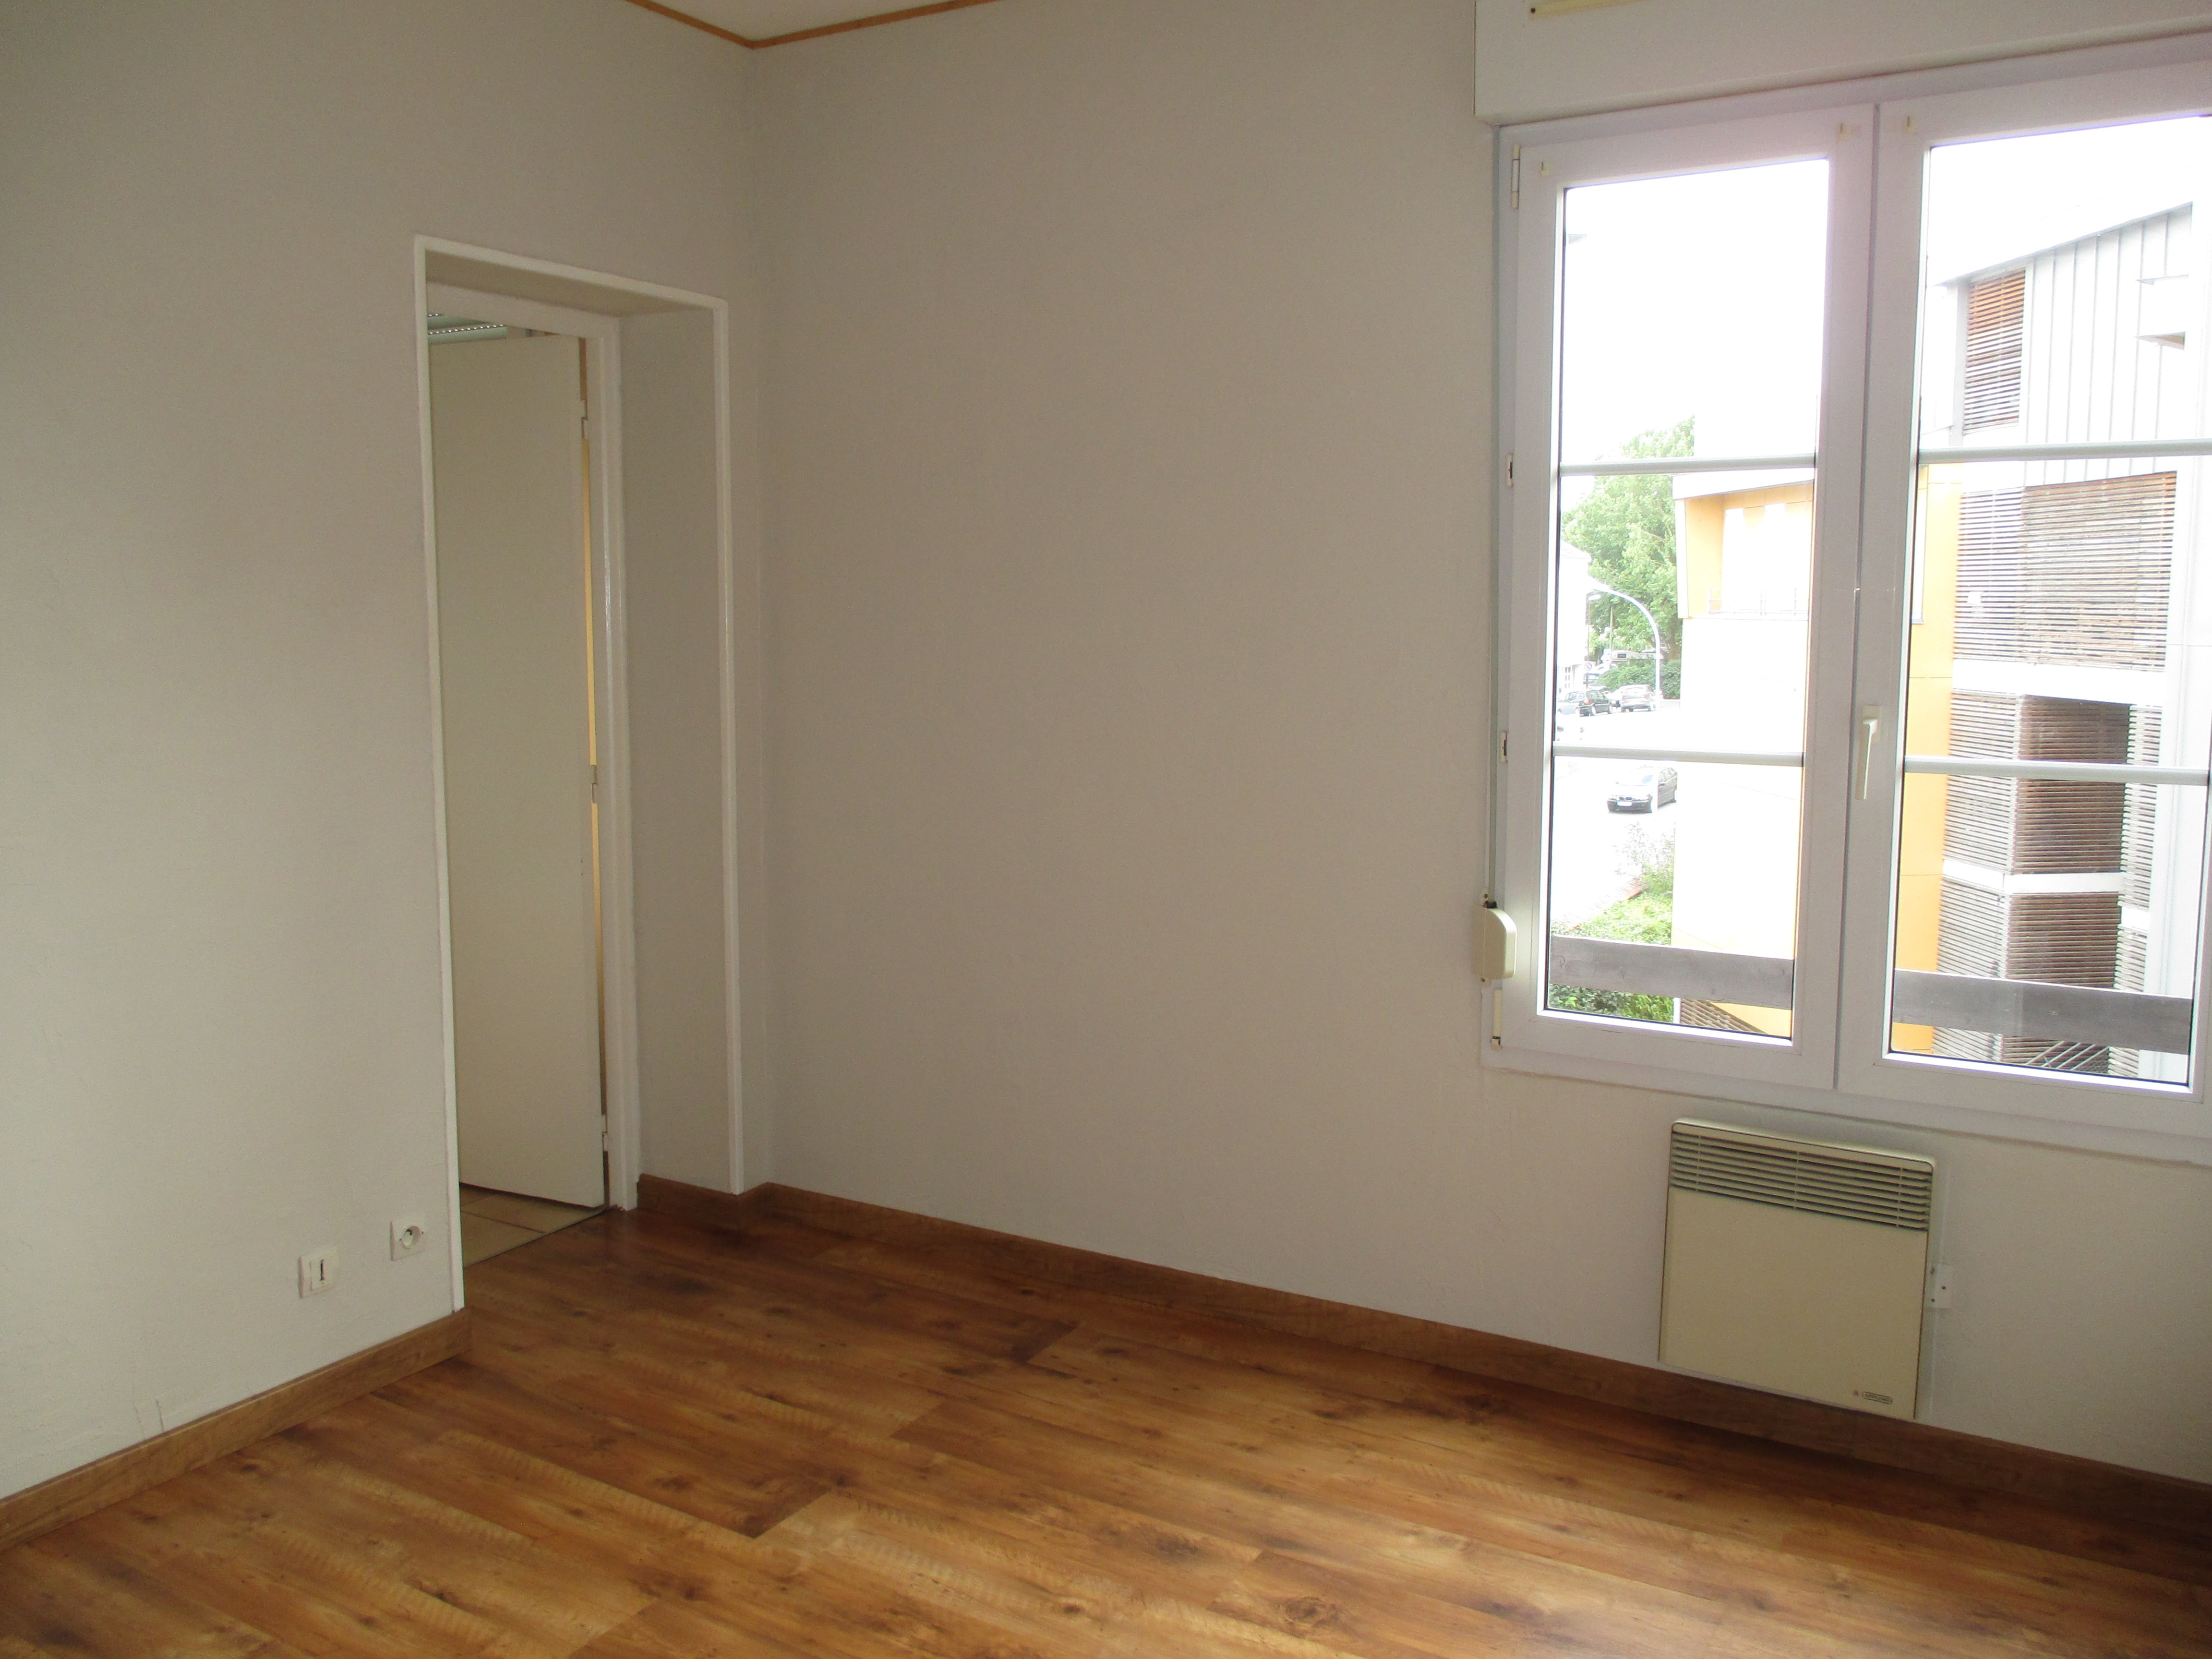 Damonte VENTE APPARTEMENT T2 CHALONS EN CHAMPAGNE RF 497